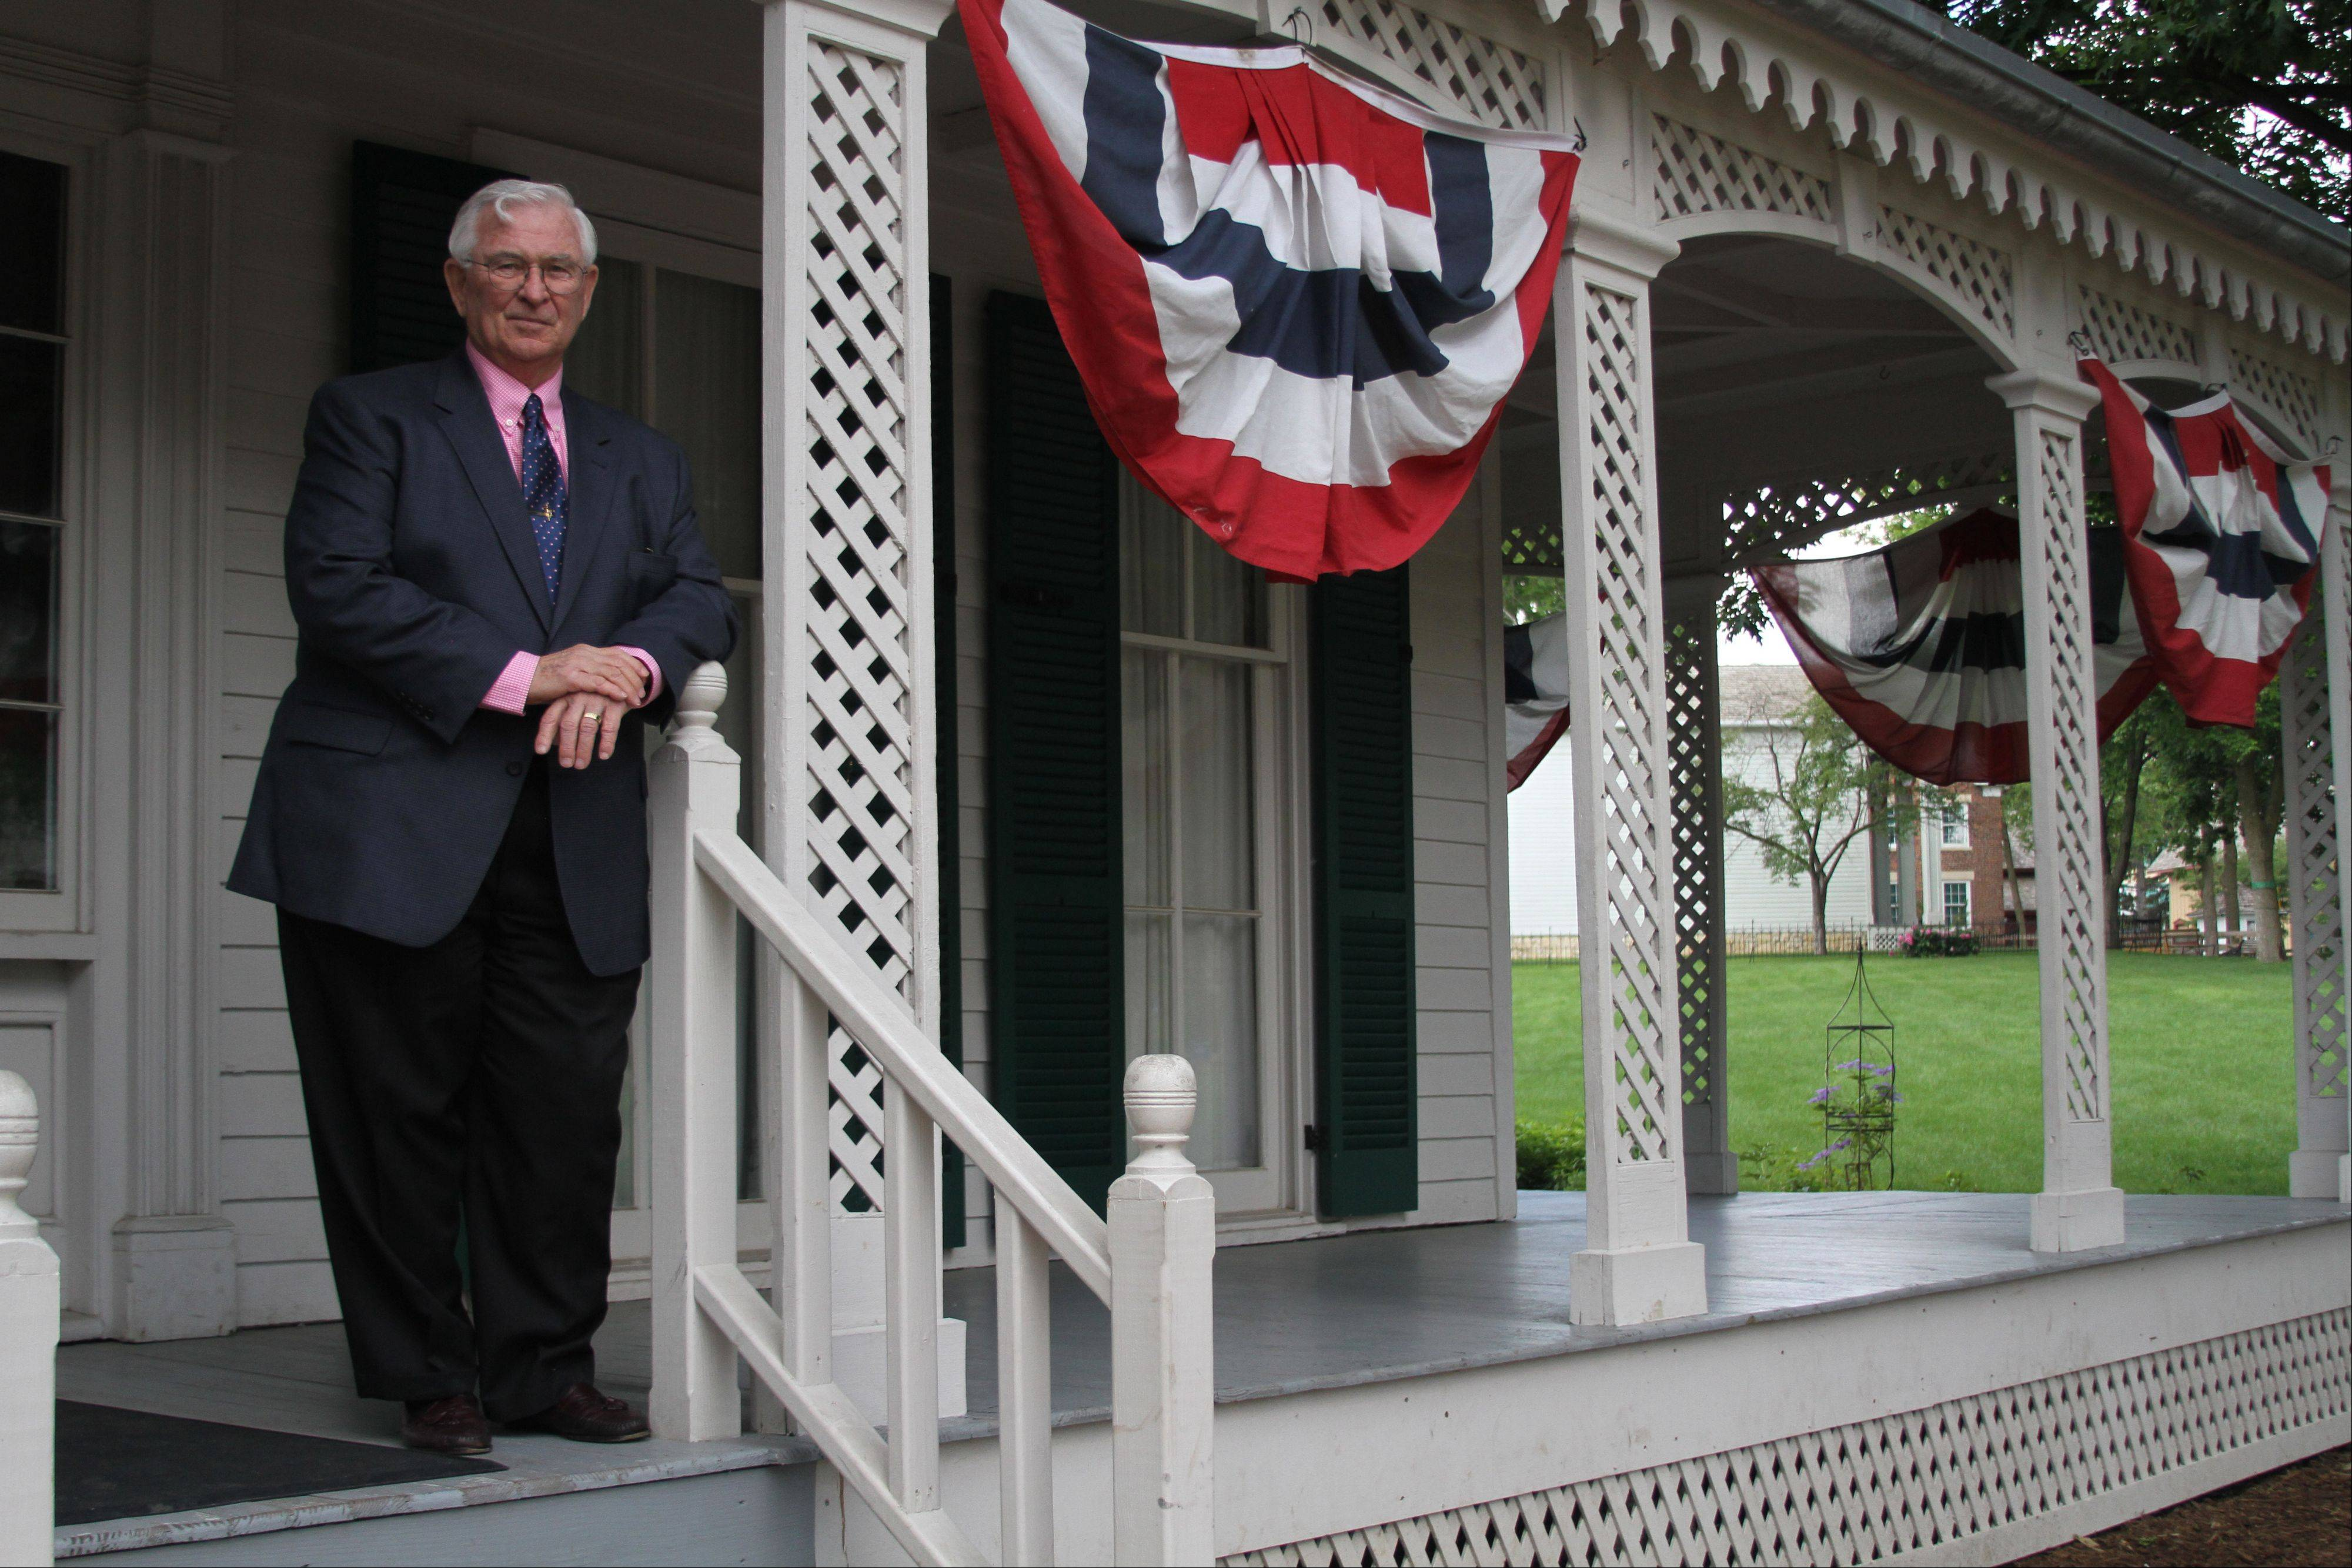 Mike Krol, a 28-year Naperville resident, is enthusiastic about the city's history. The Paw Paw Post Office is his favorite building at Naper Settlement.